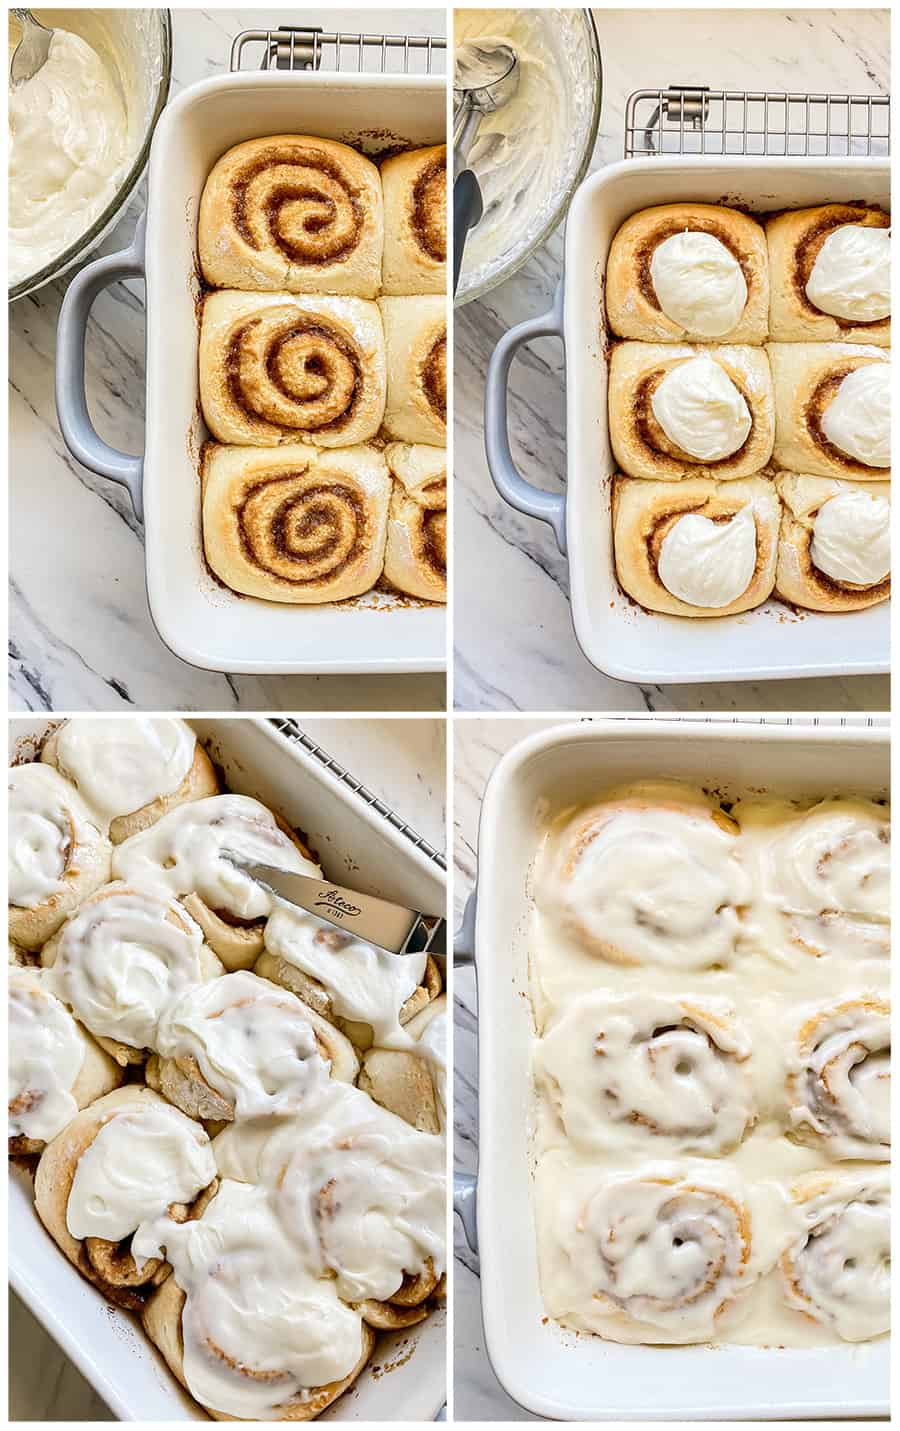 step by step photos of putting icing on cinnamon rolls